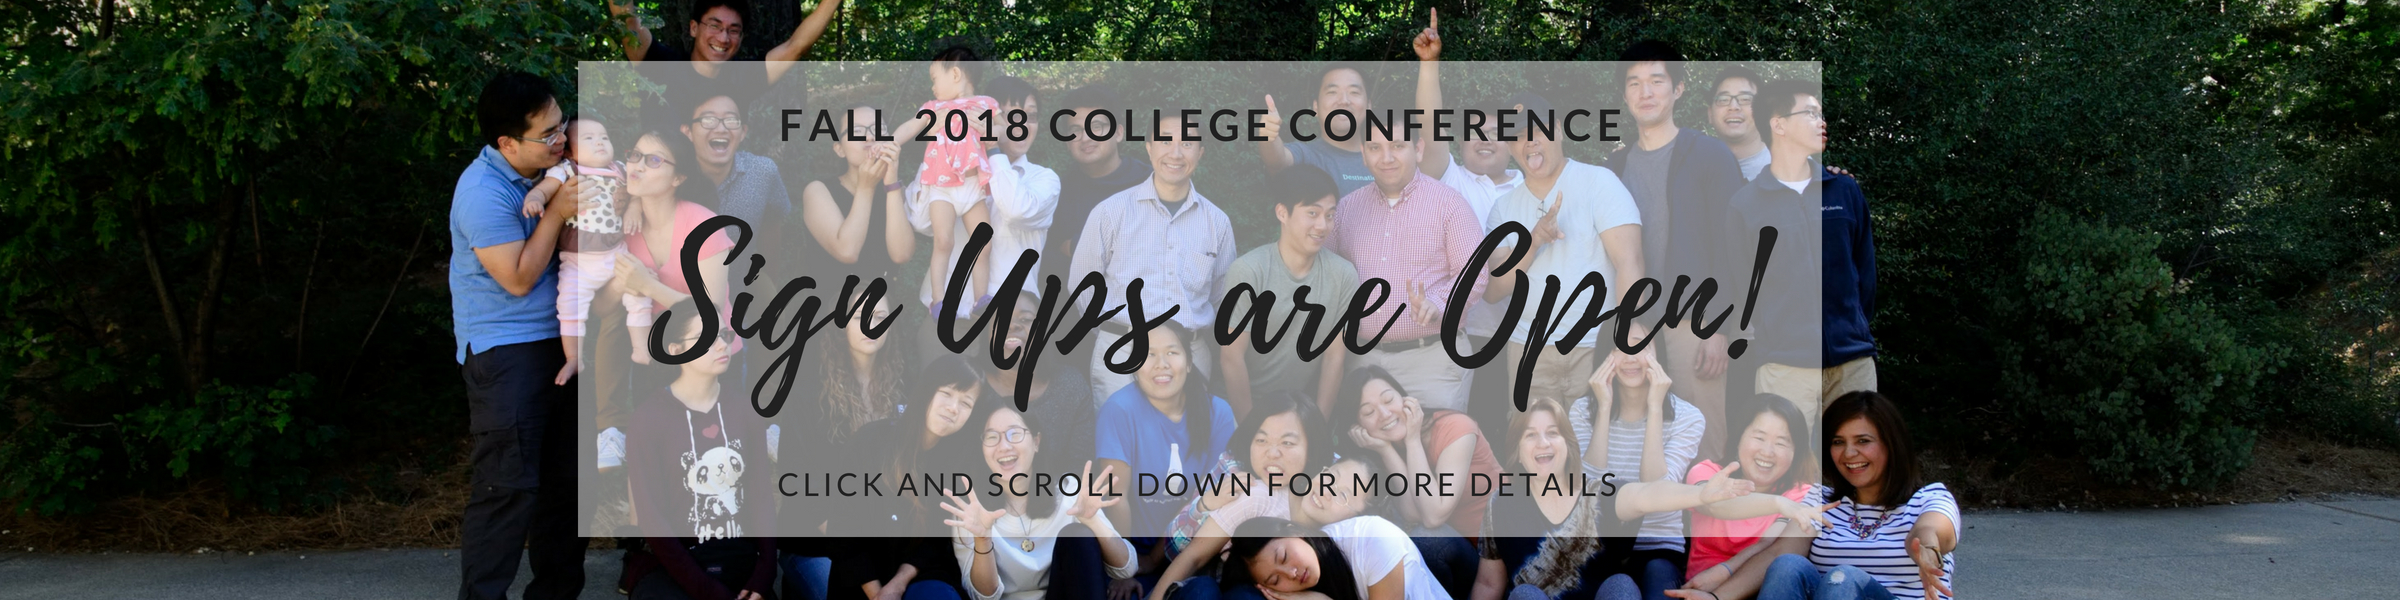 Fall 2018 Conference Banner